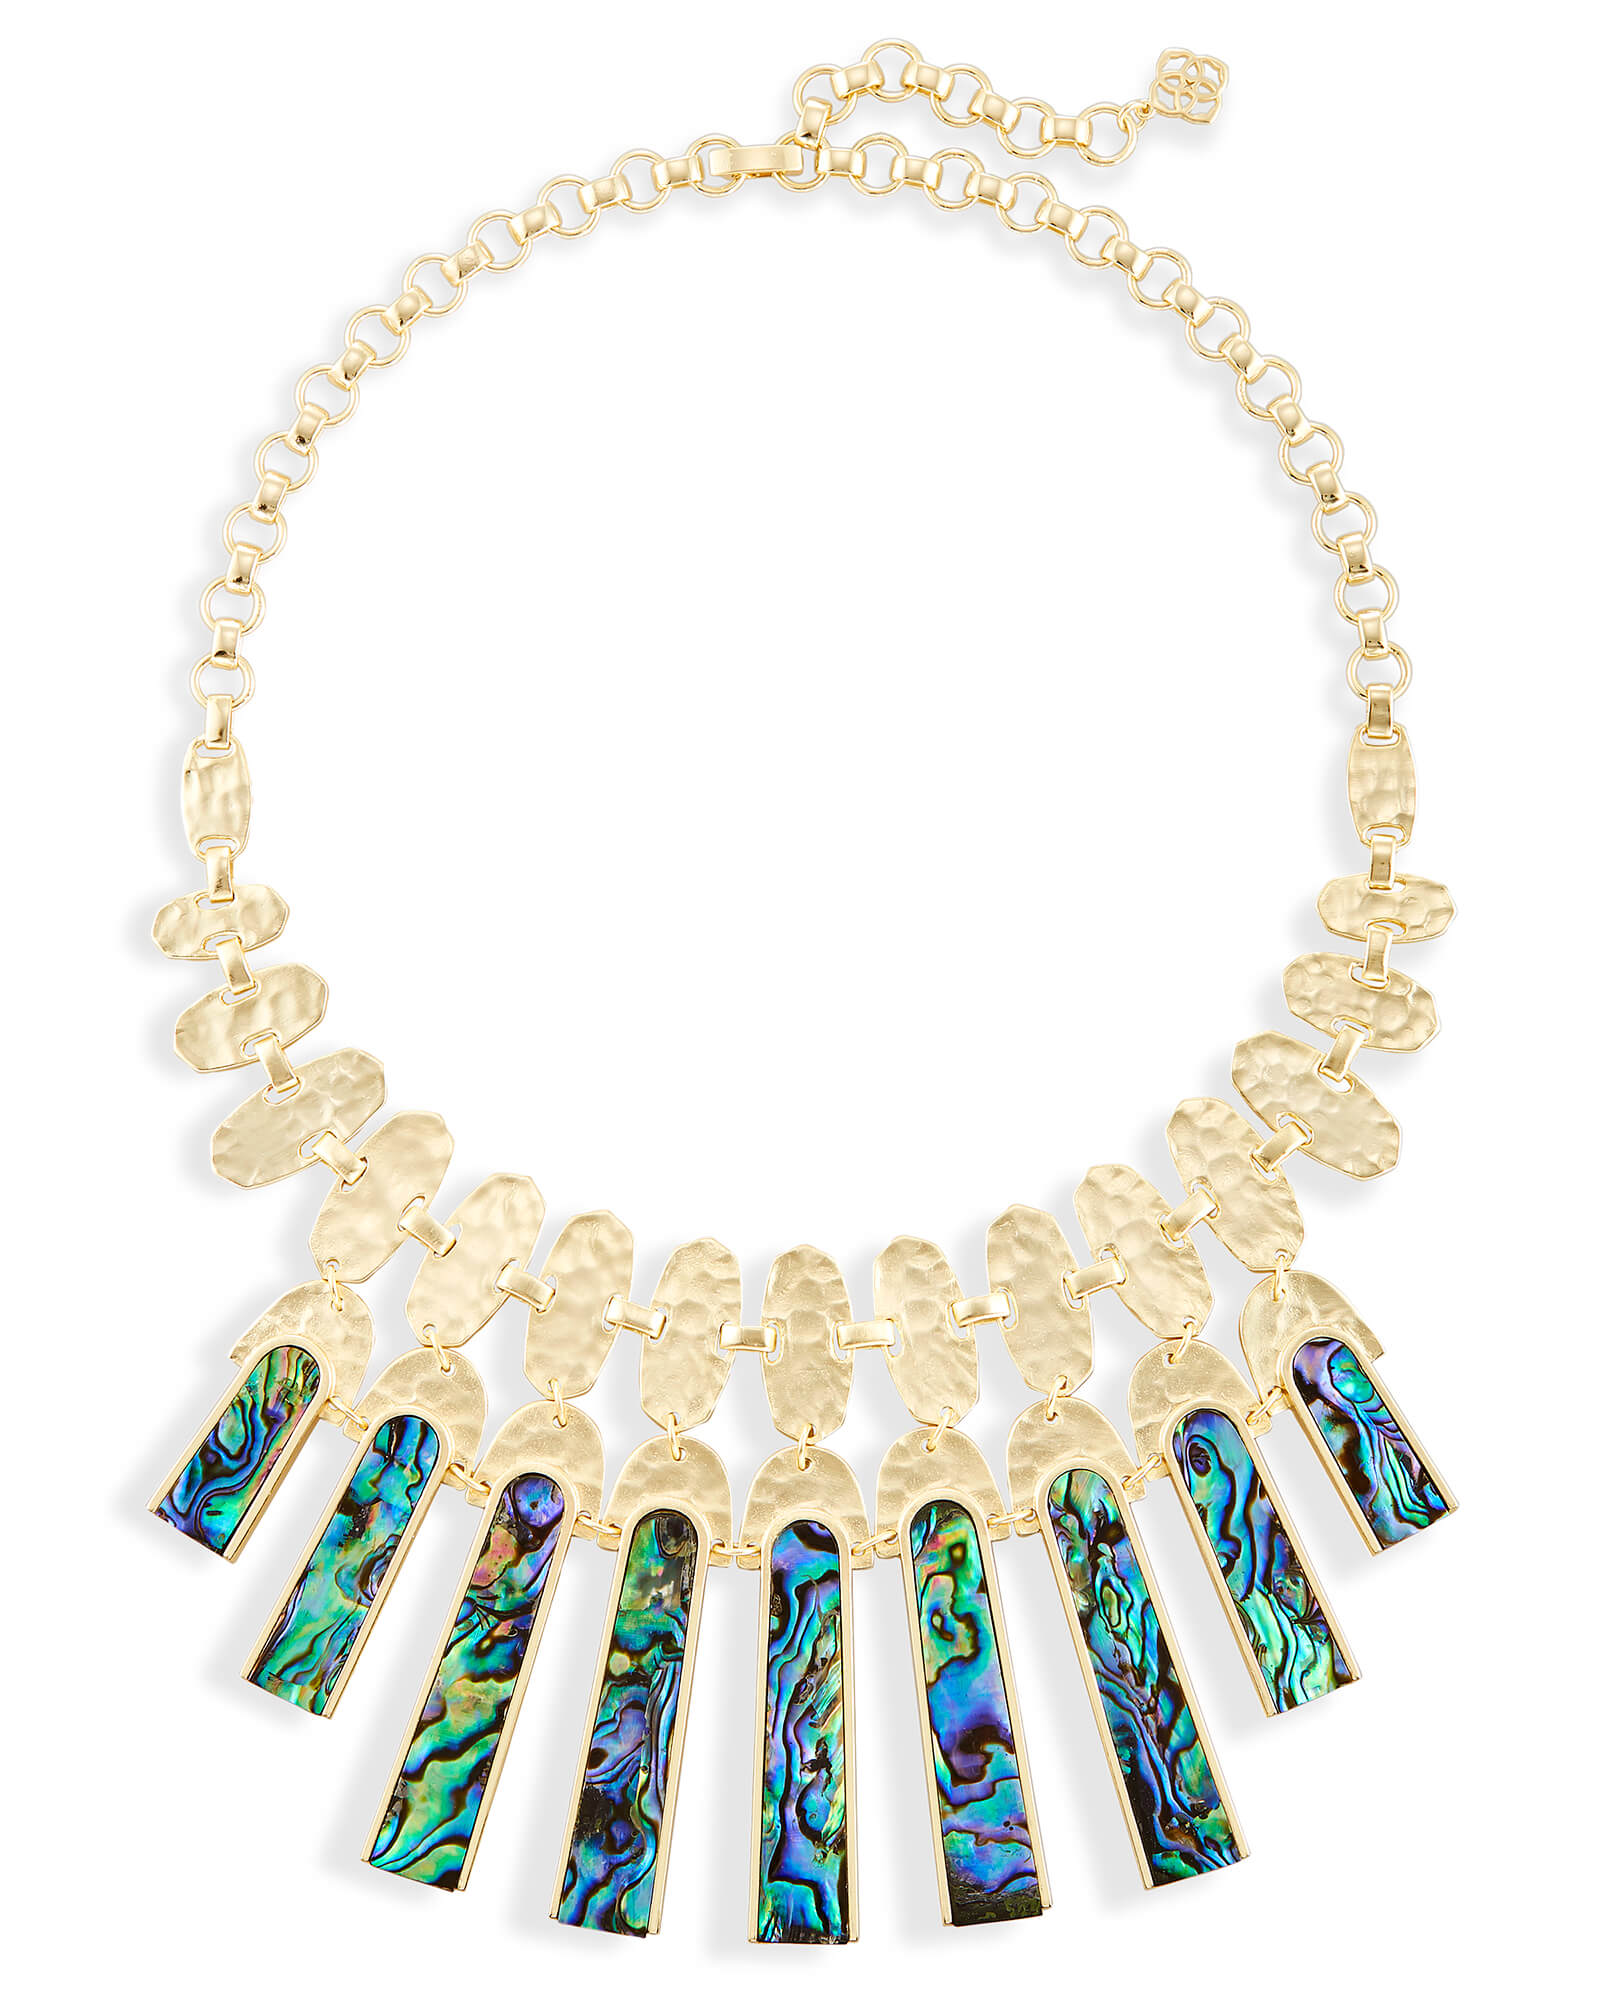 Mimi Statement Necklace in Abalone Shell